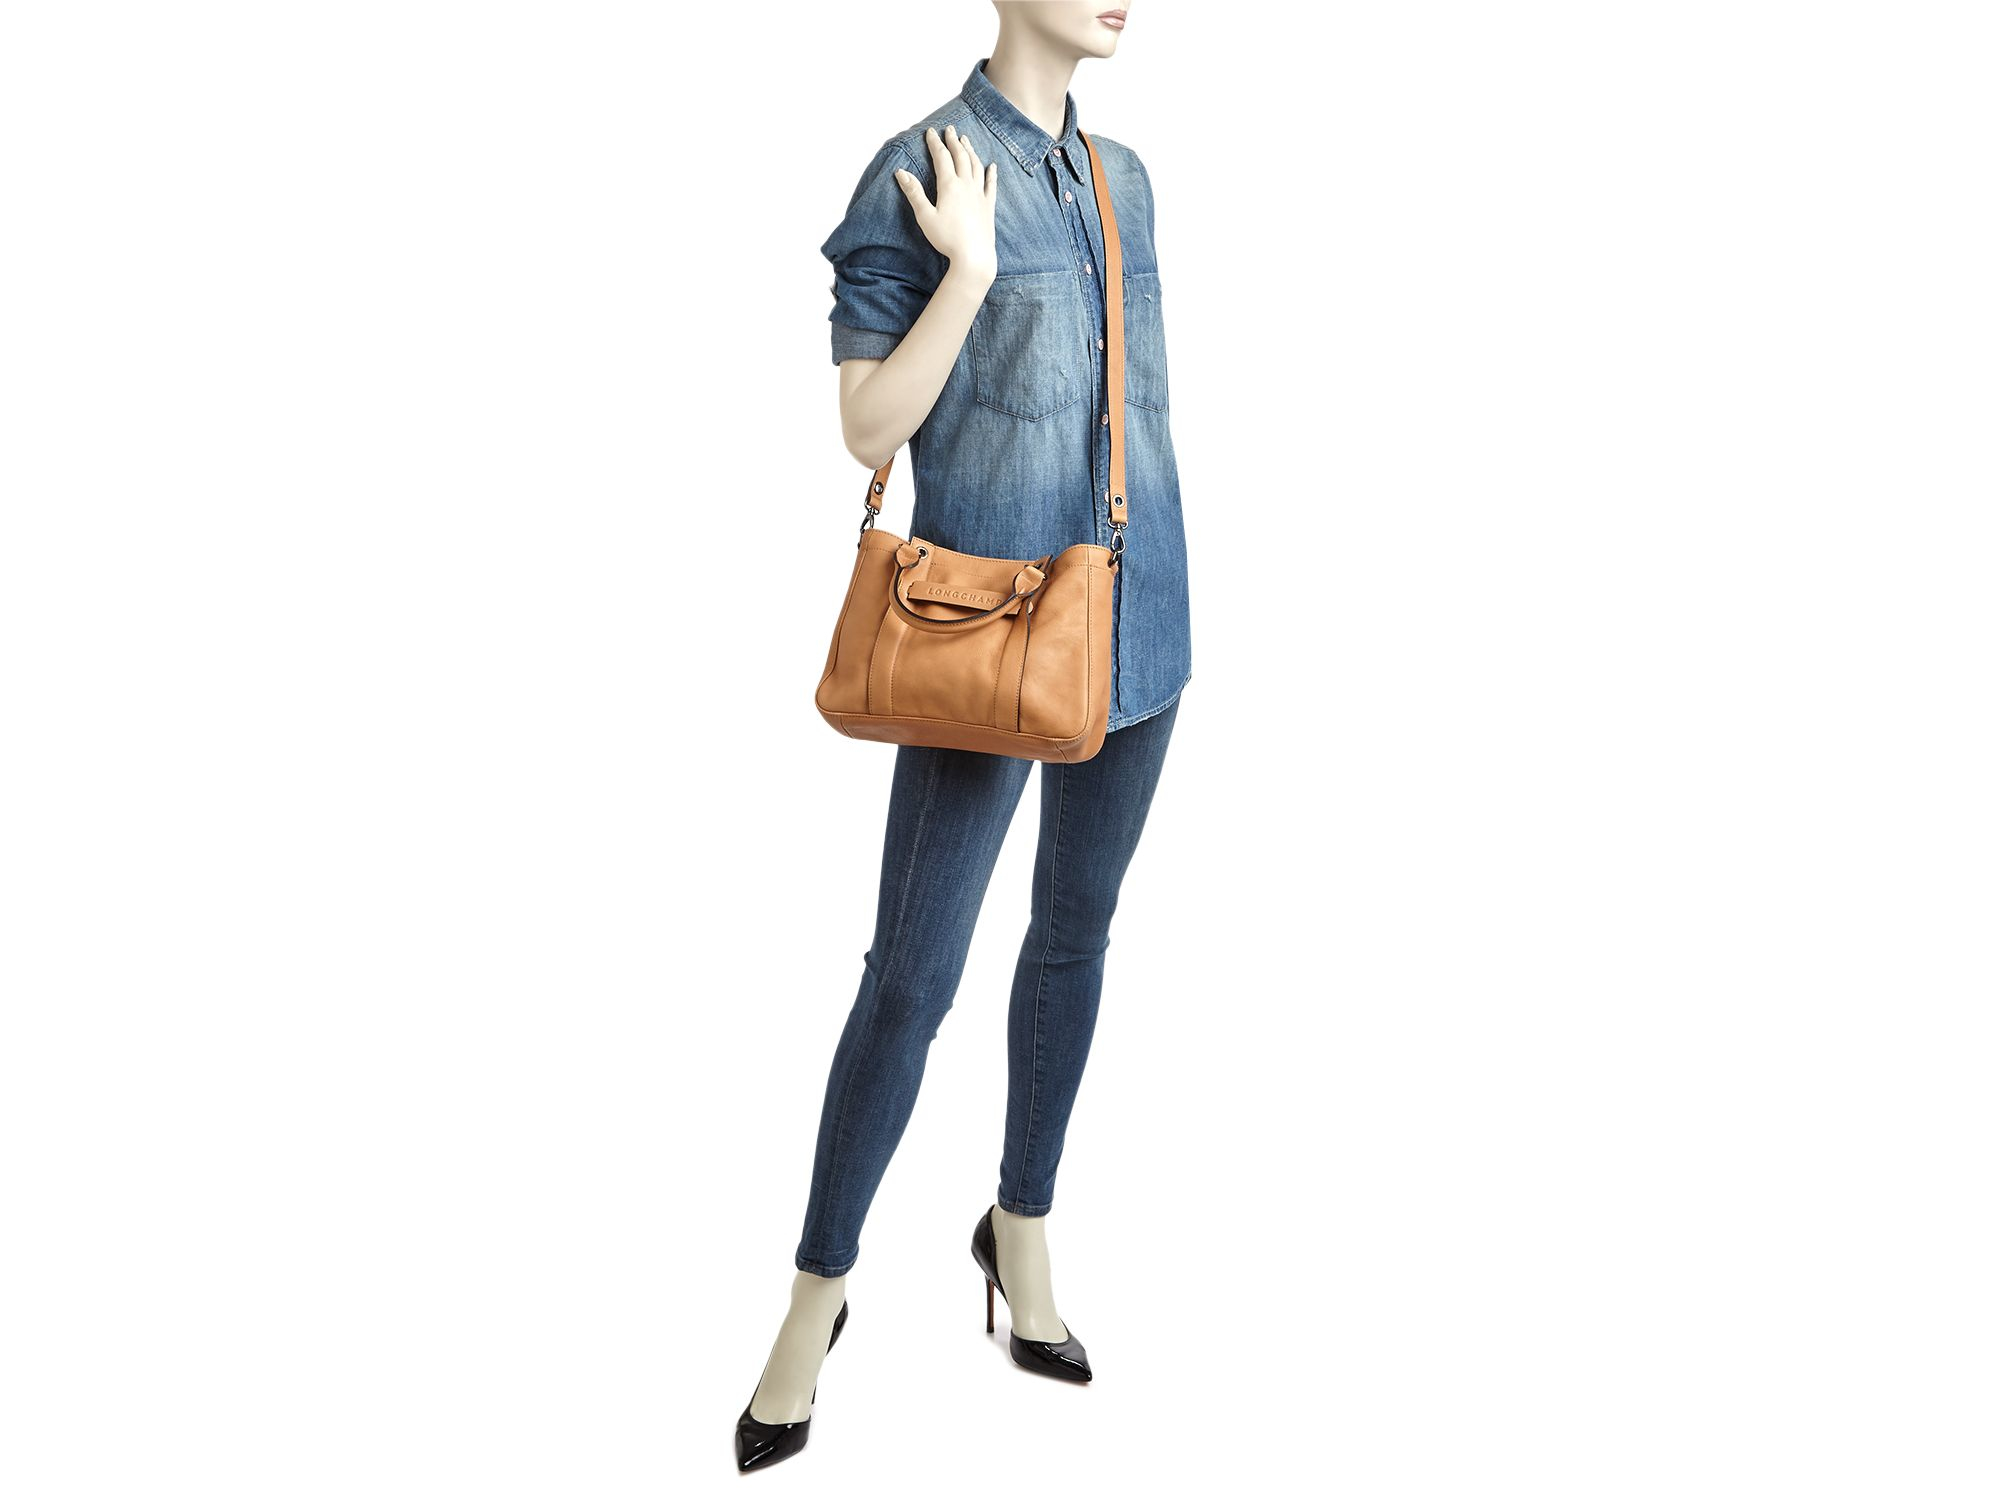 Lyst - Longchamp 3d Small Tote in Natural 2dc8add523